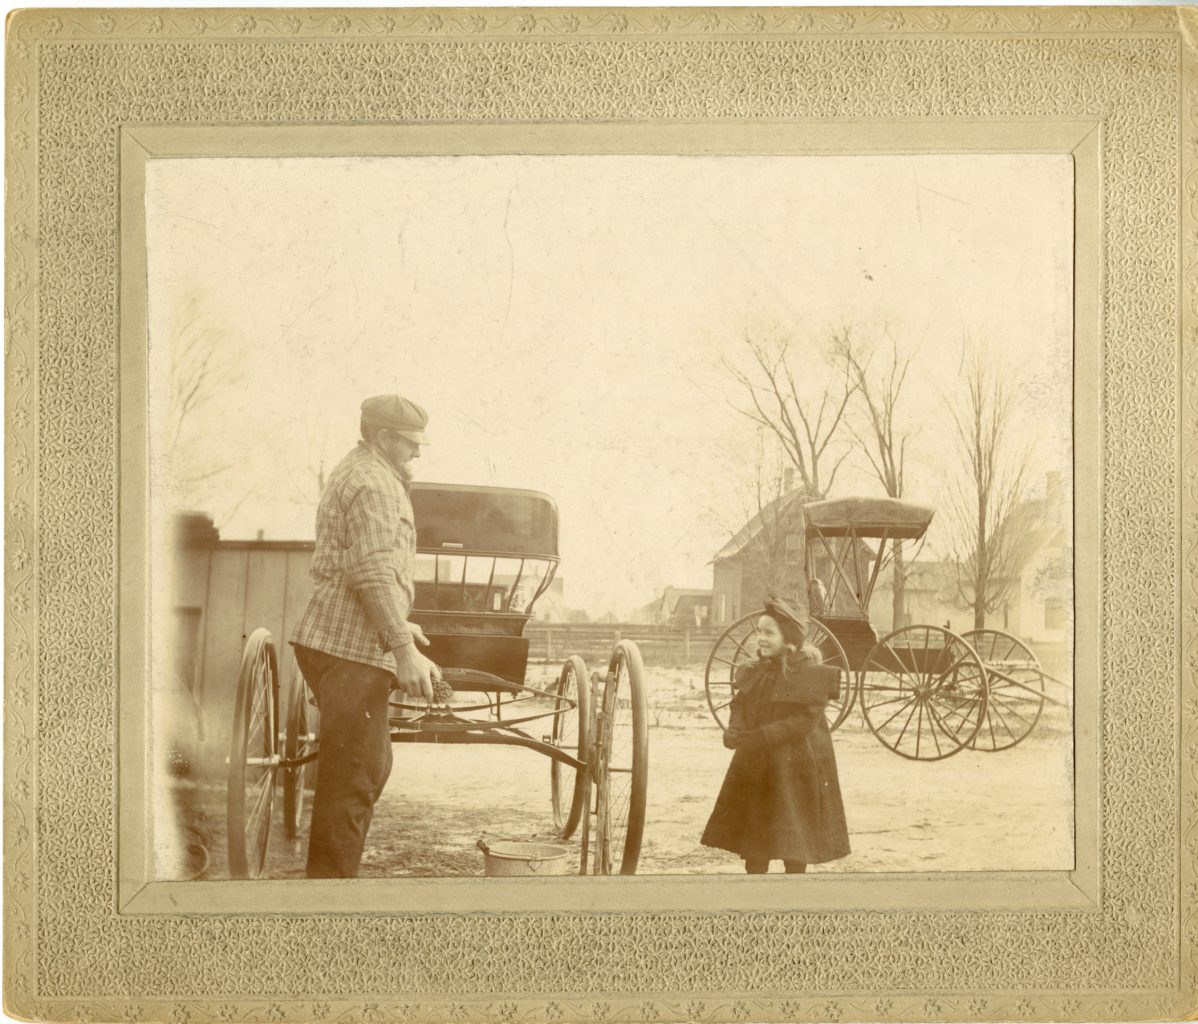 Man and young girl interact. Two buggies in the background.